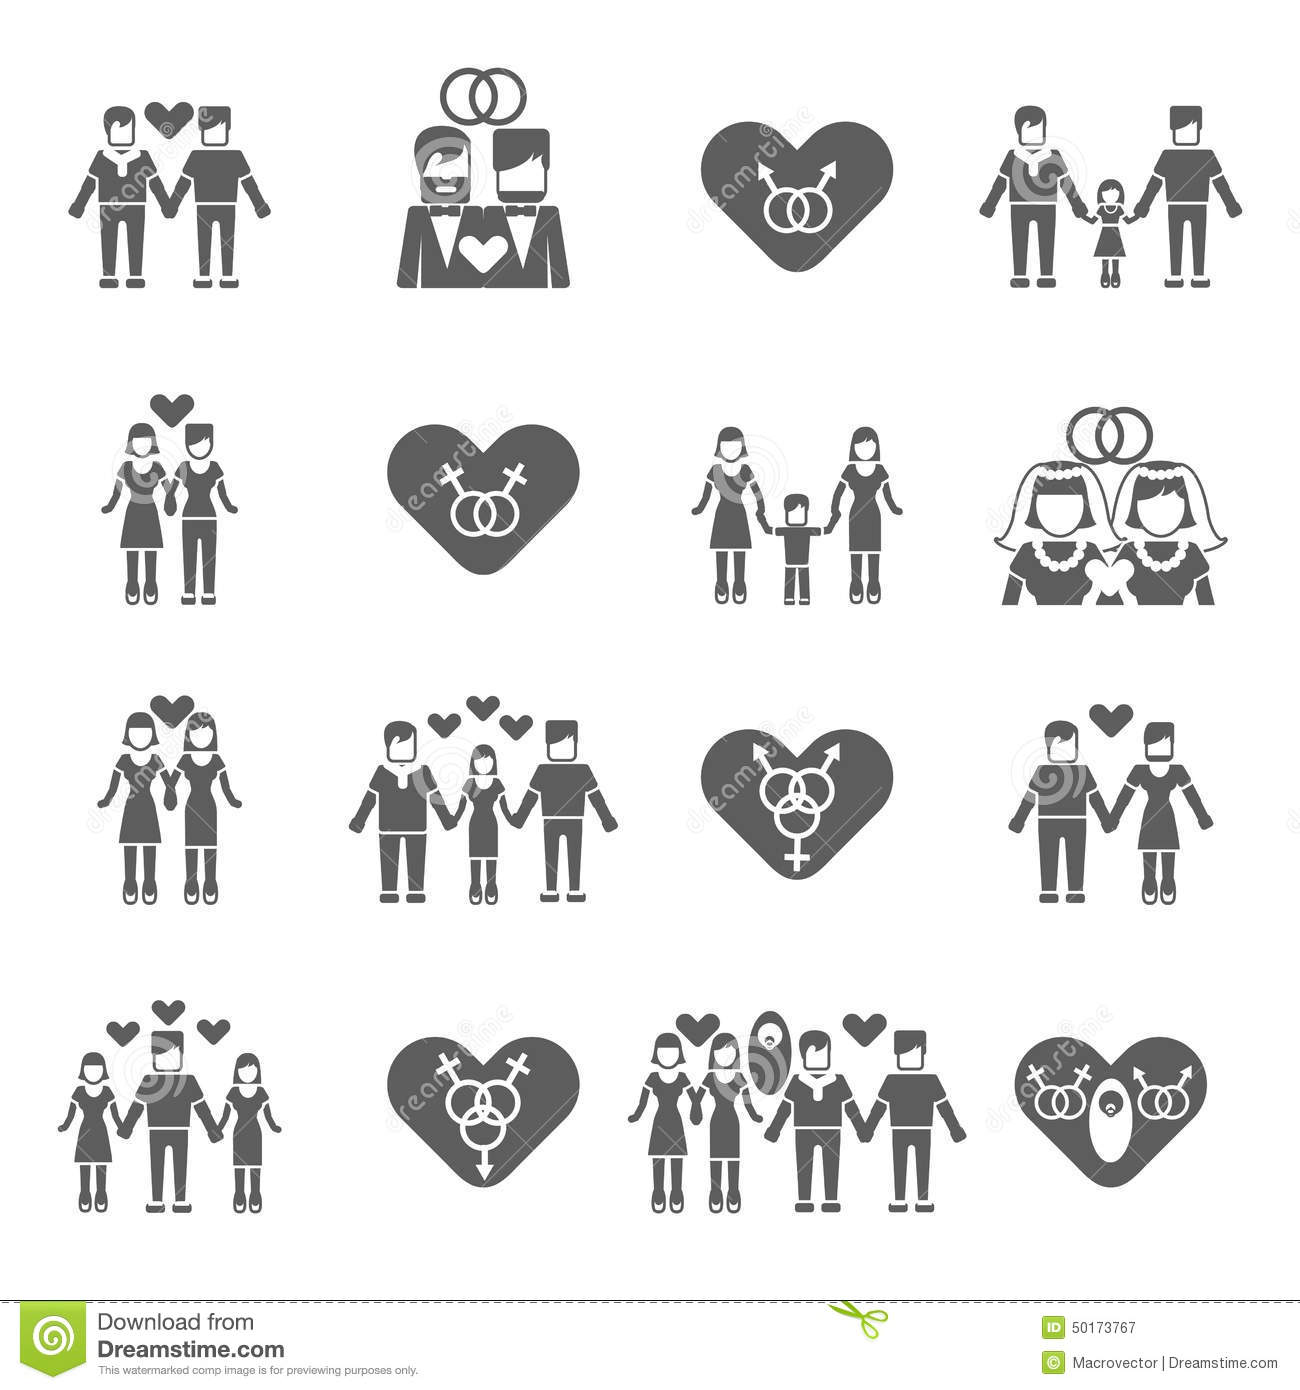 Non-traditional Family Icons Set Black Stock Vector - Image: 50173767